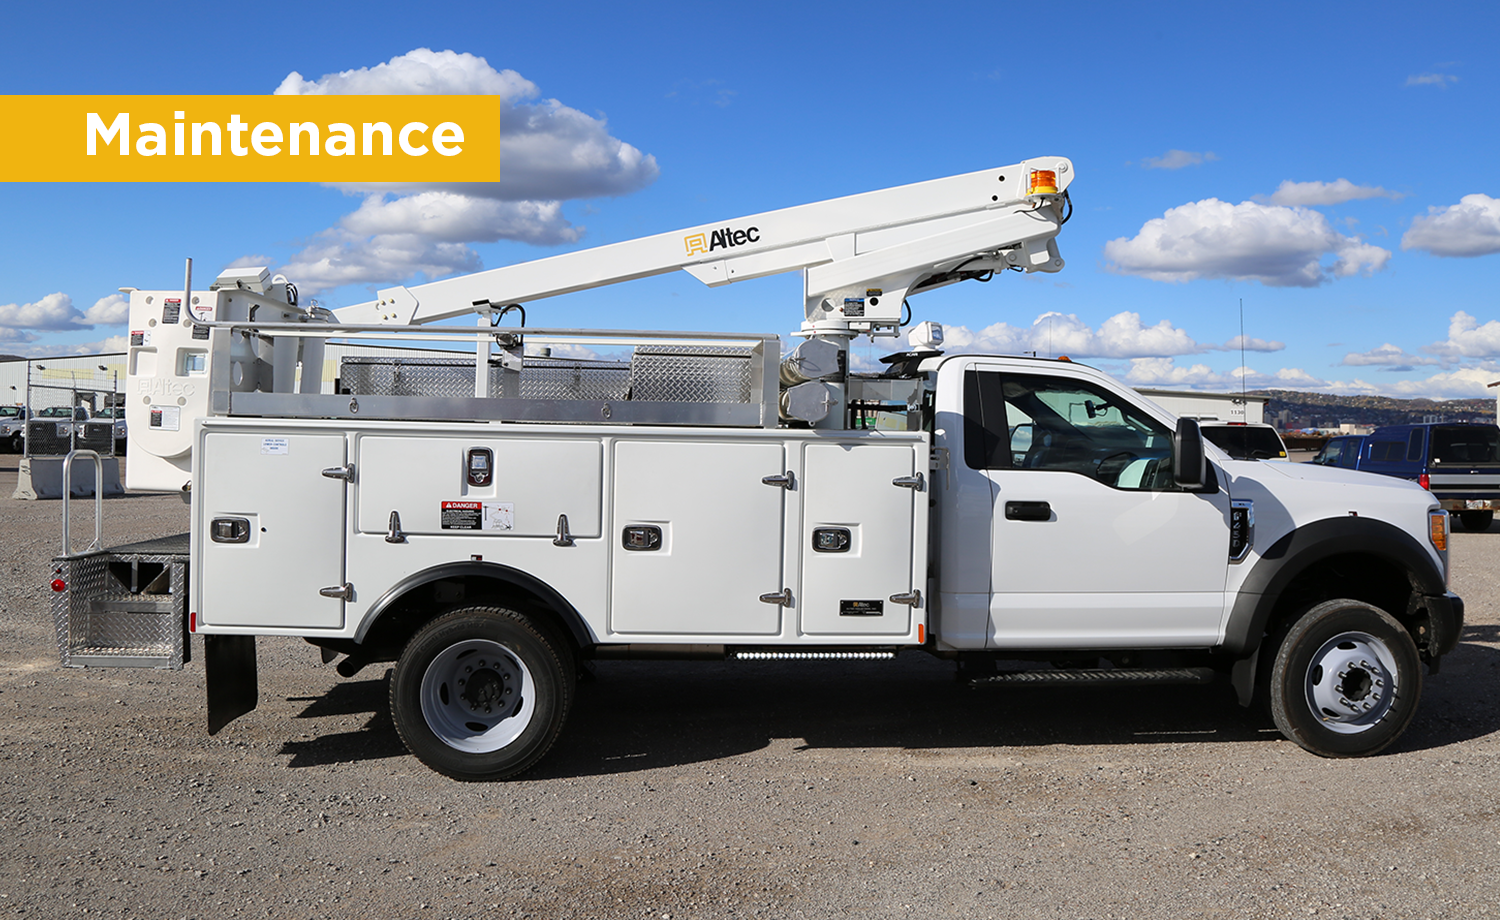 Altec AT200A Introduction to Maintenance - Service Training